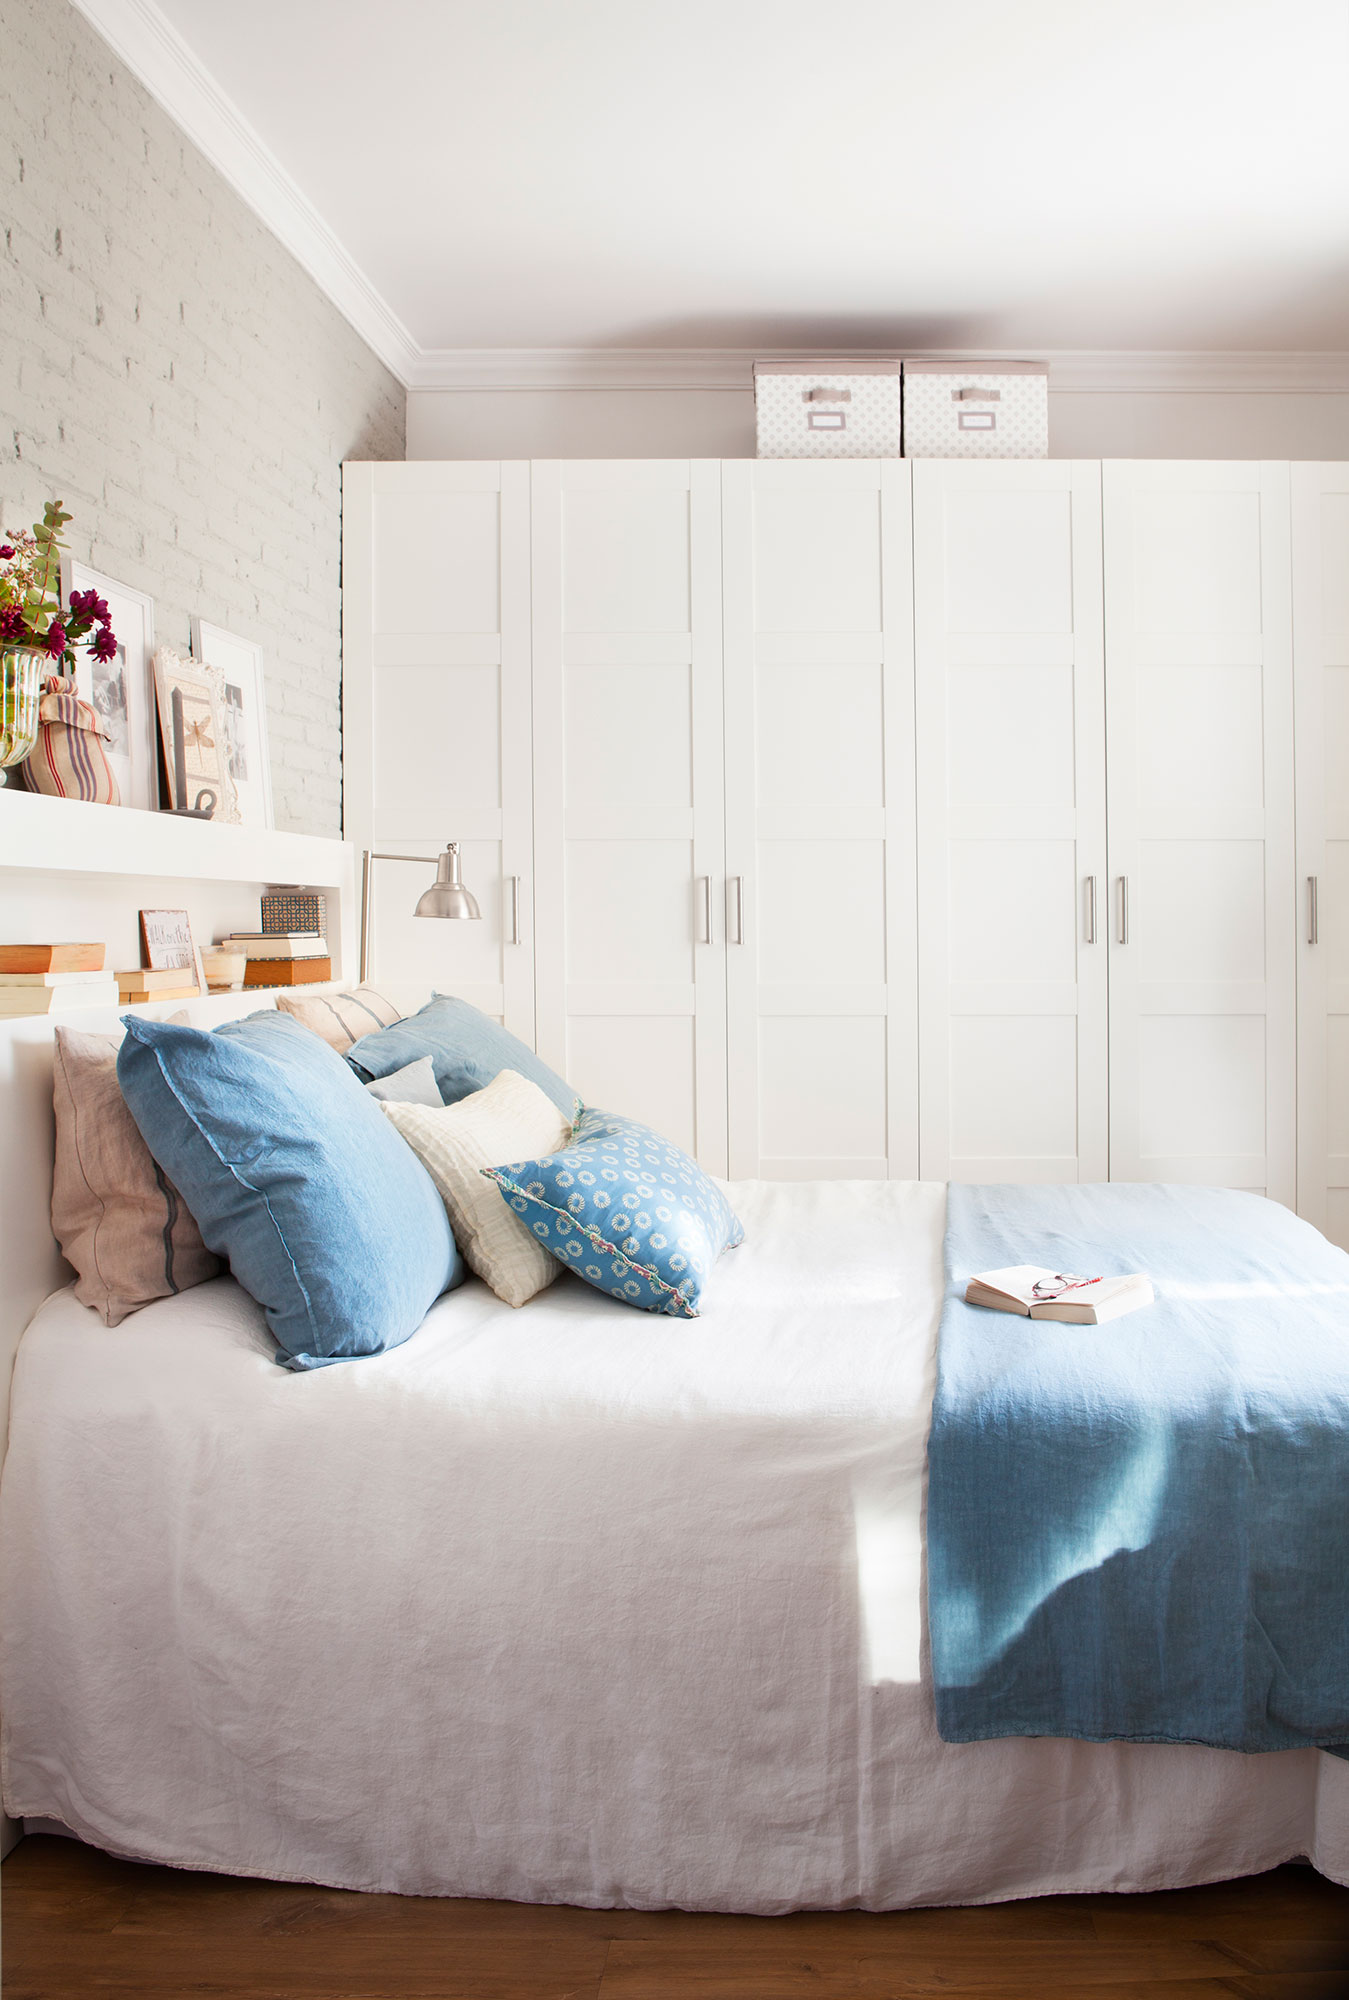 Compartir piso 10 ideas low cost para decorar tu dormitorio - Armario dormitorio blanco ...